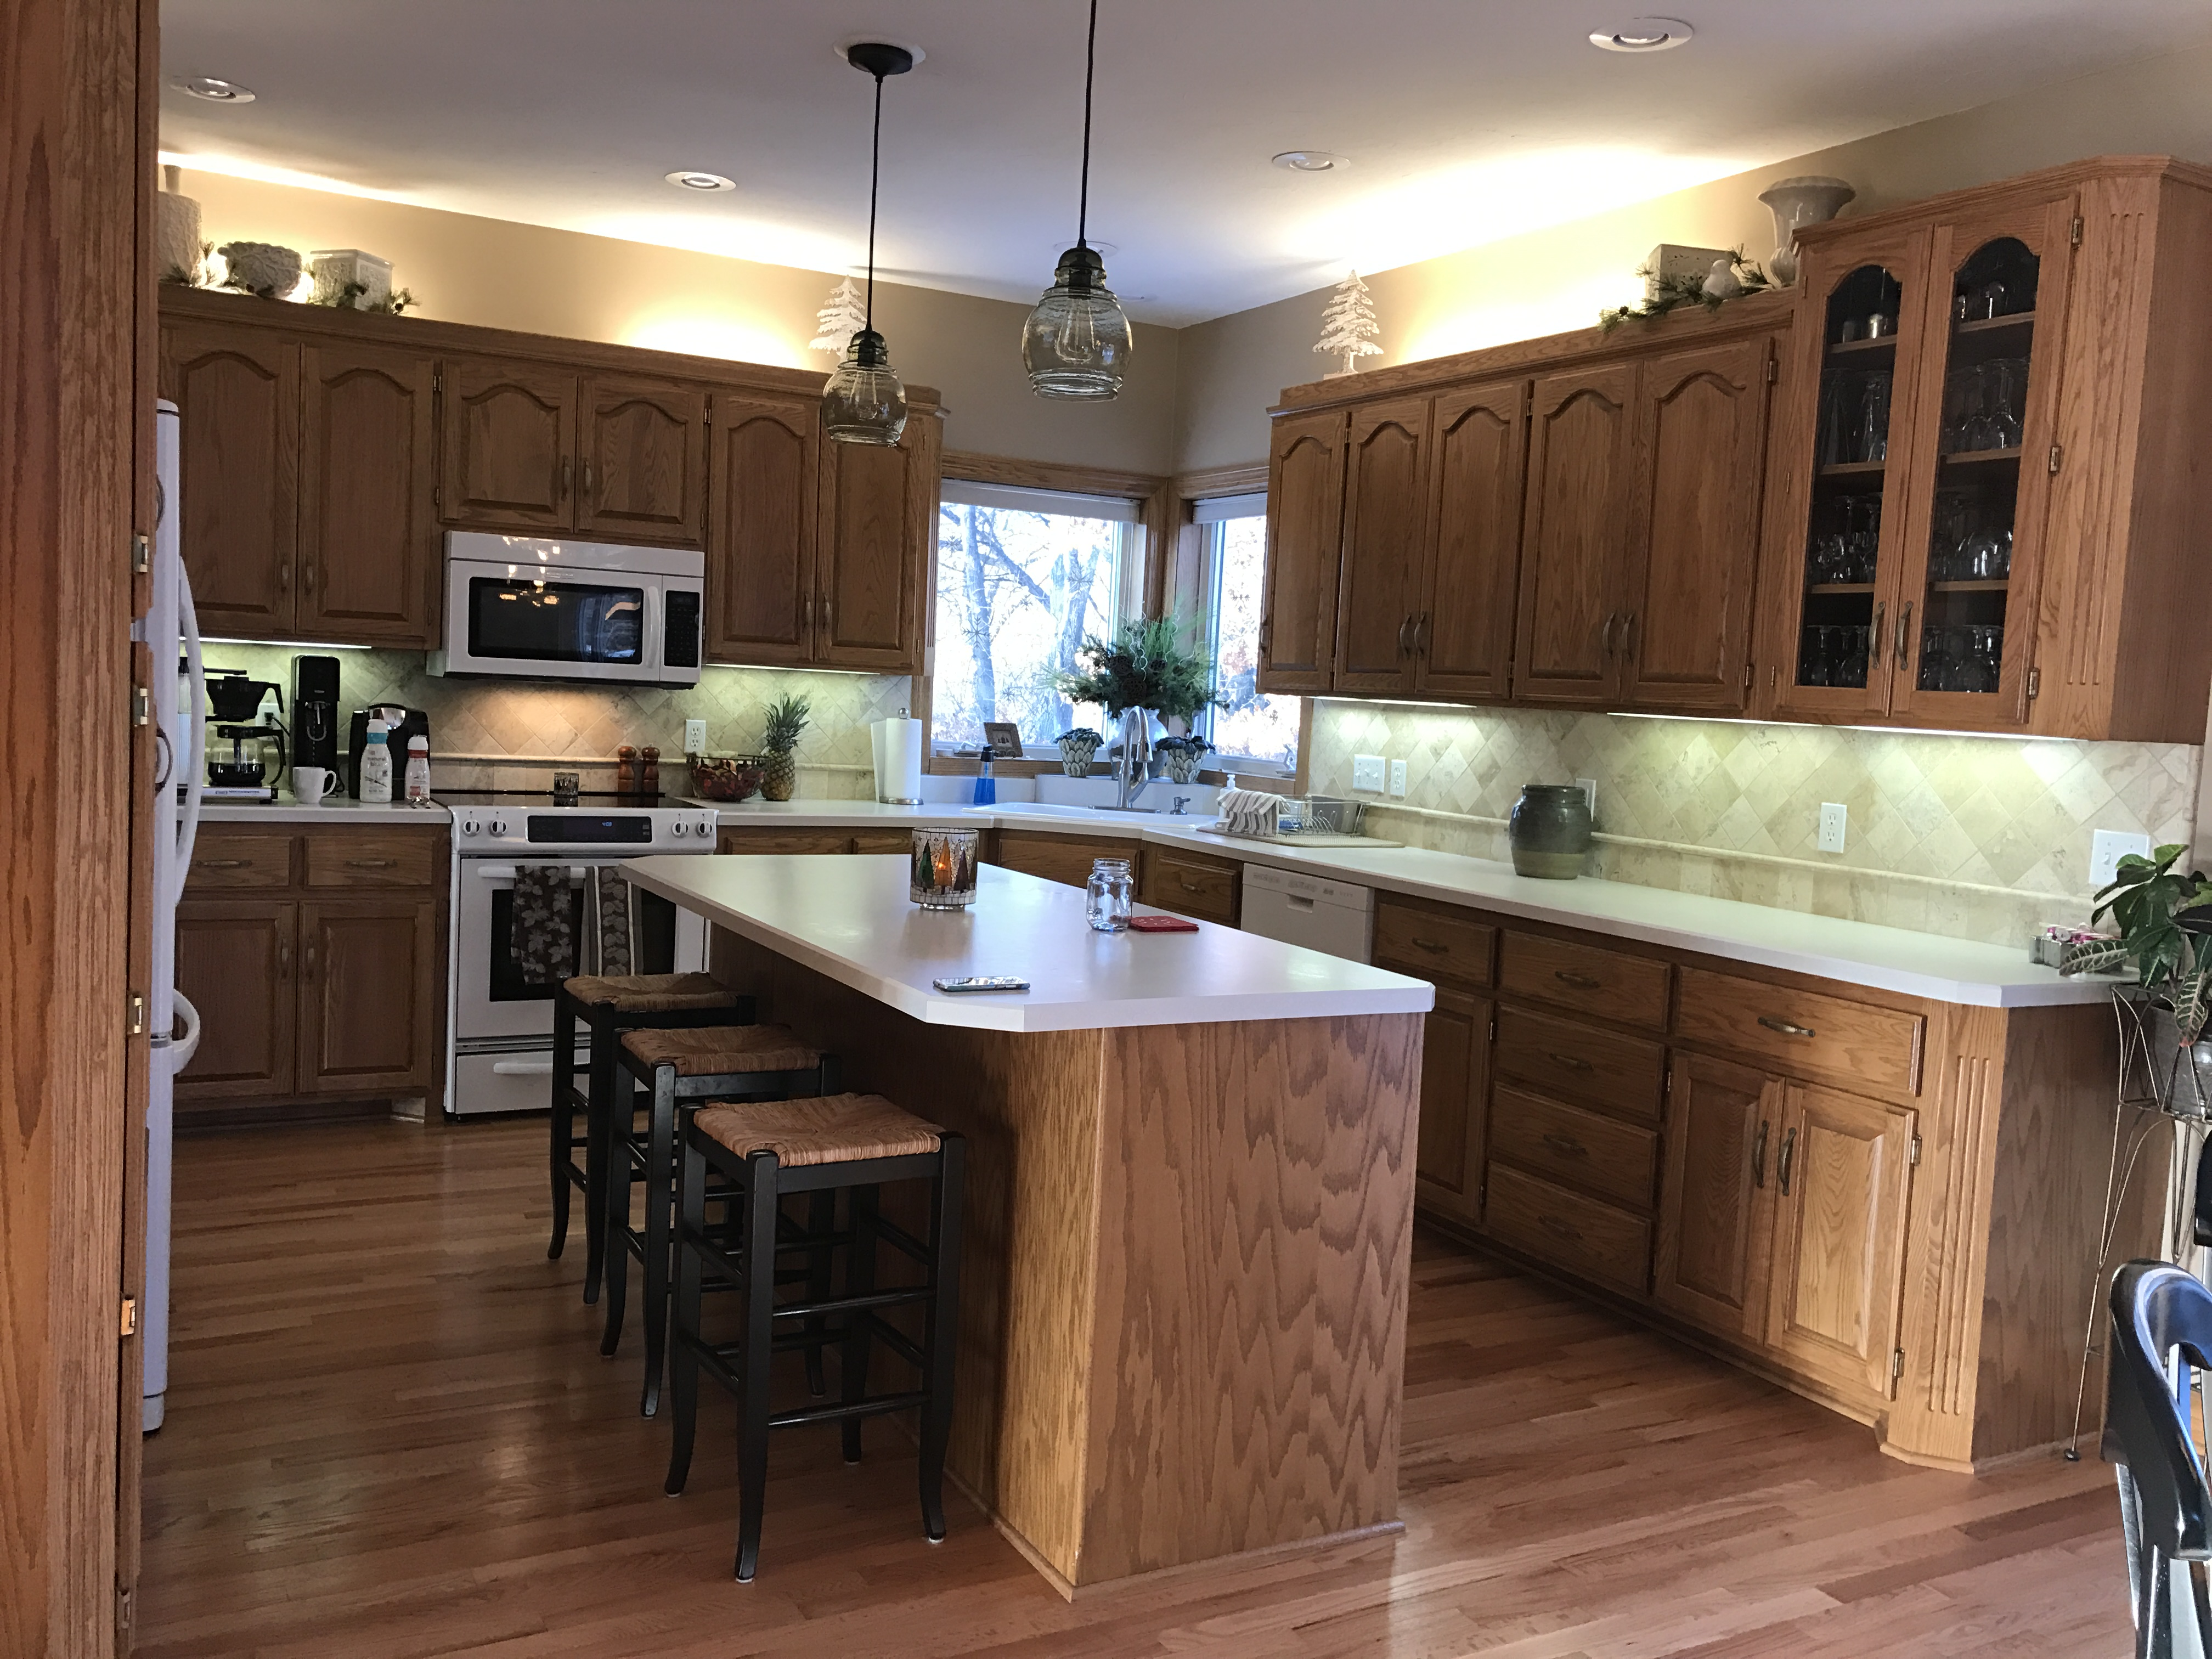 House Covered In Oak 90 S Oak Cabinets Doors Floors And Railings Need Updating Here S Our Advice From A Minnesota Design Build Remodeler